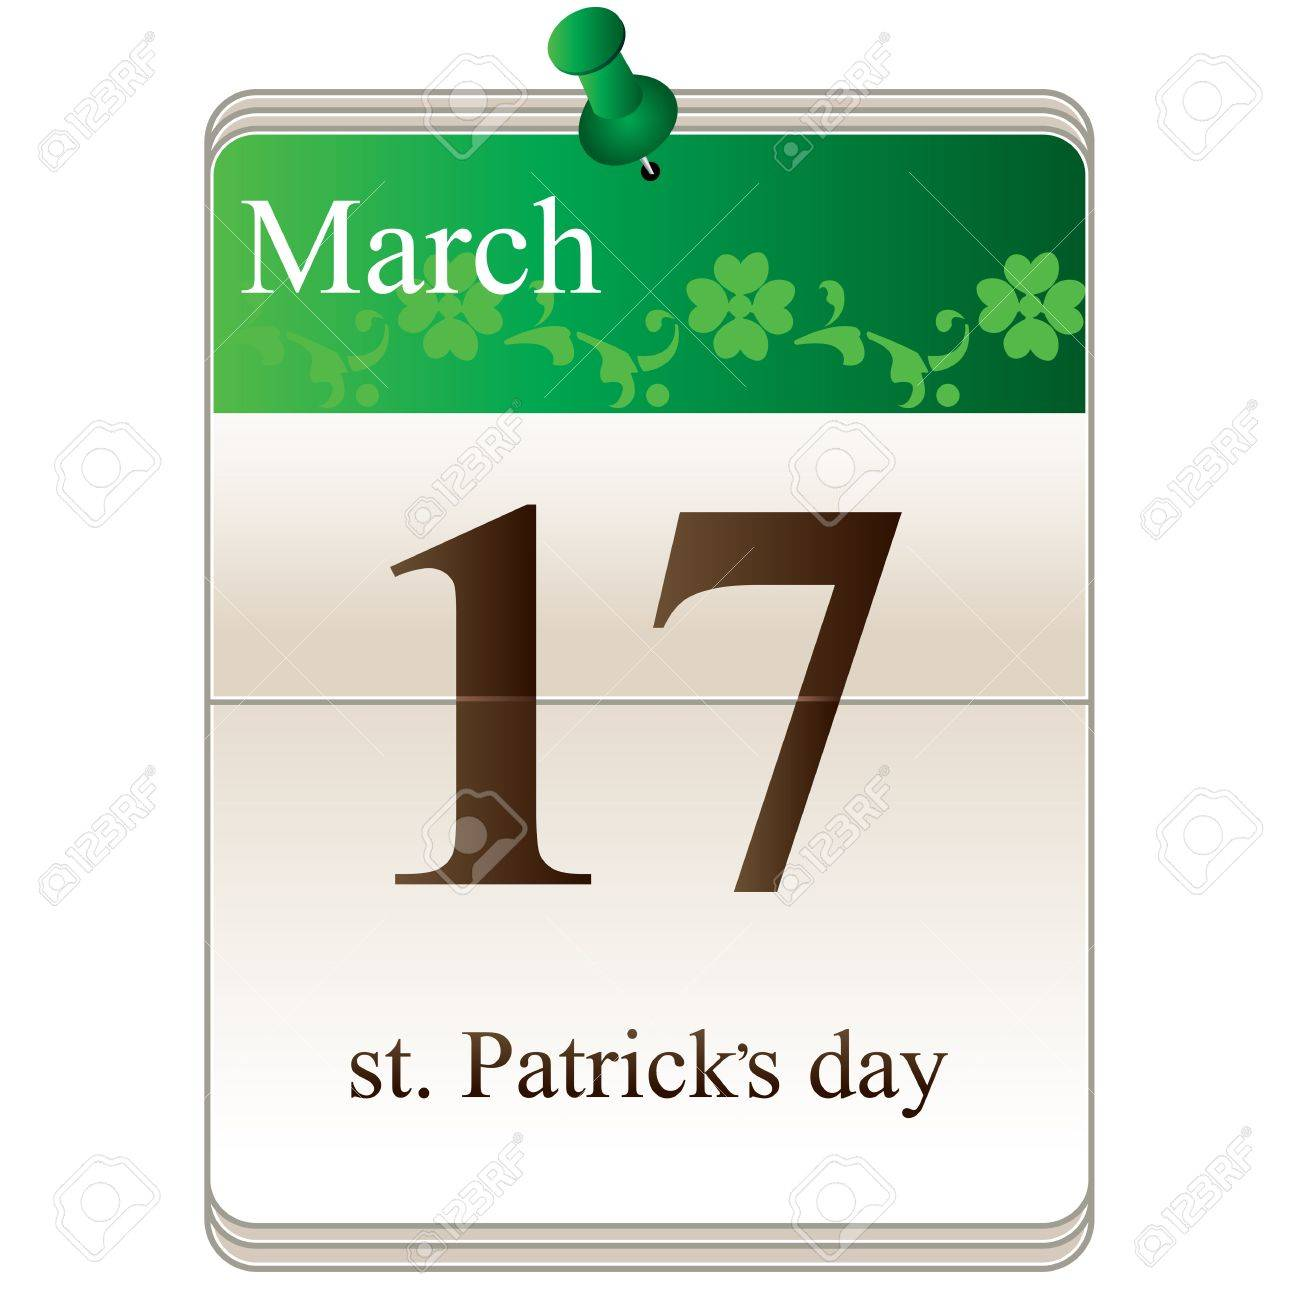 Vector of St Patricks Day Calendar for irish holiday Stock Vector - 17693590